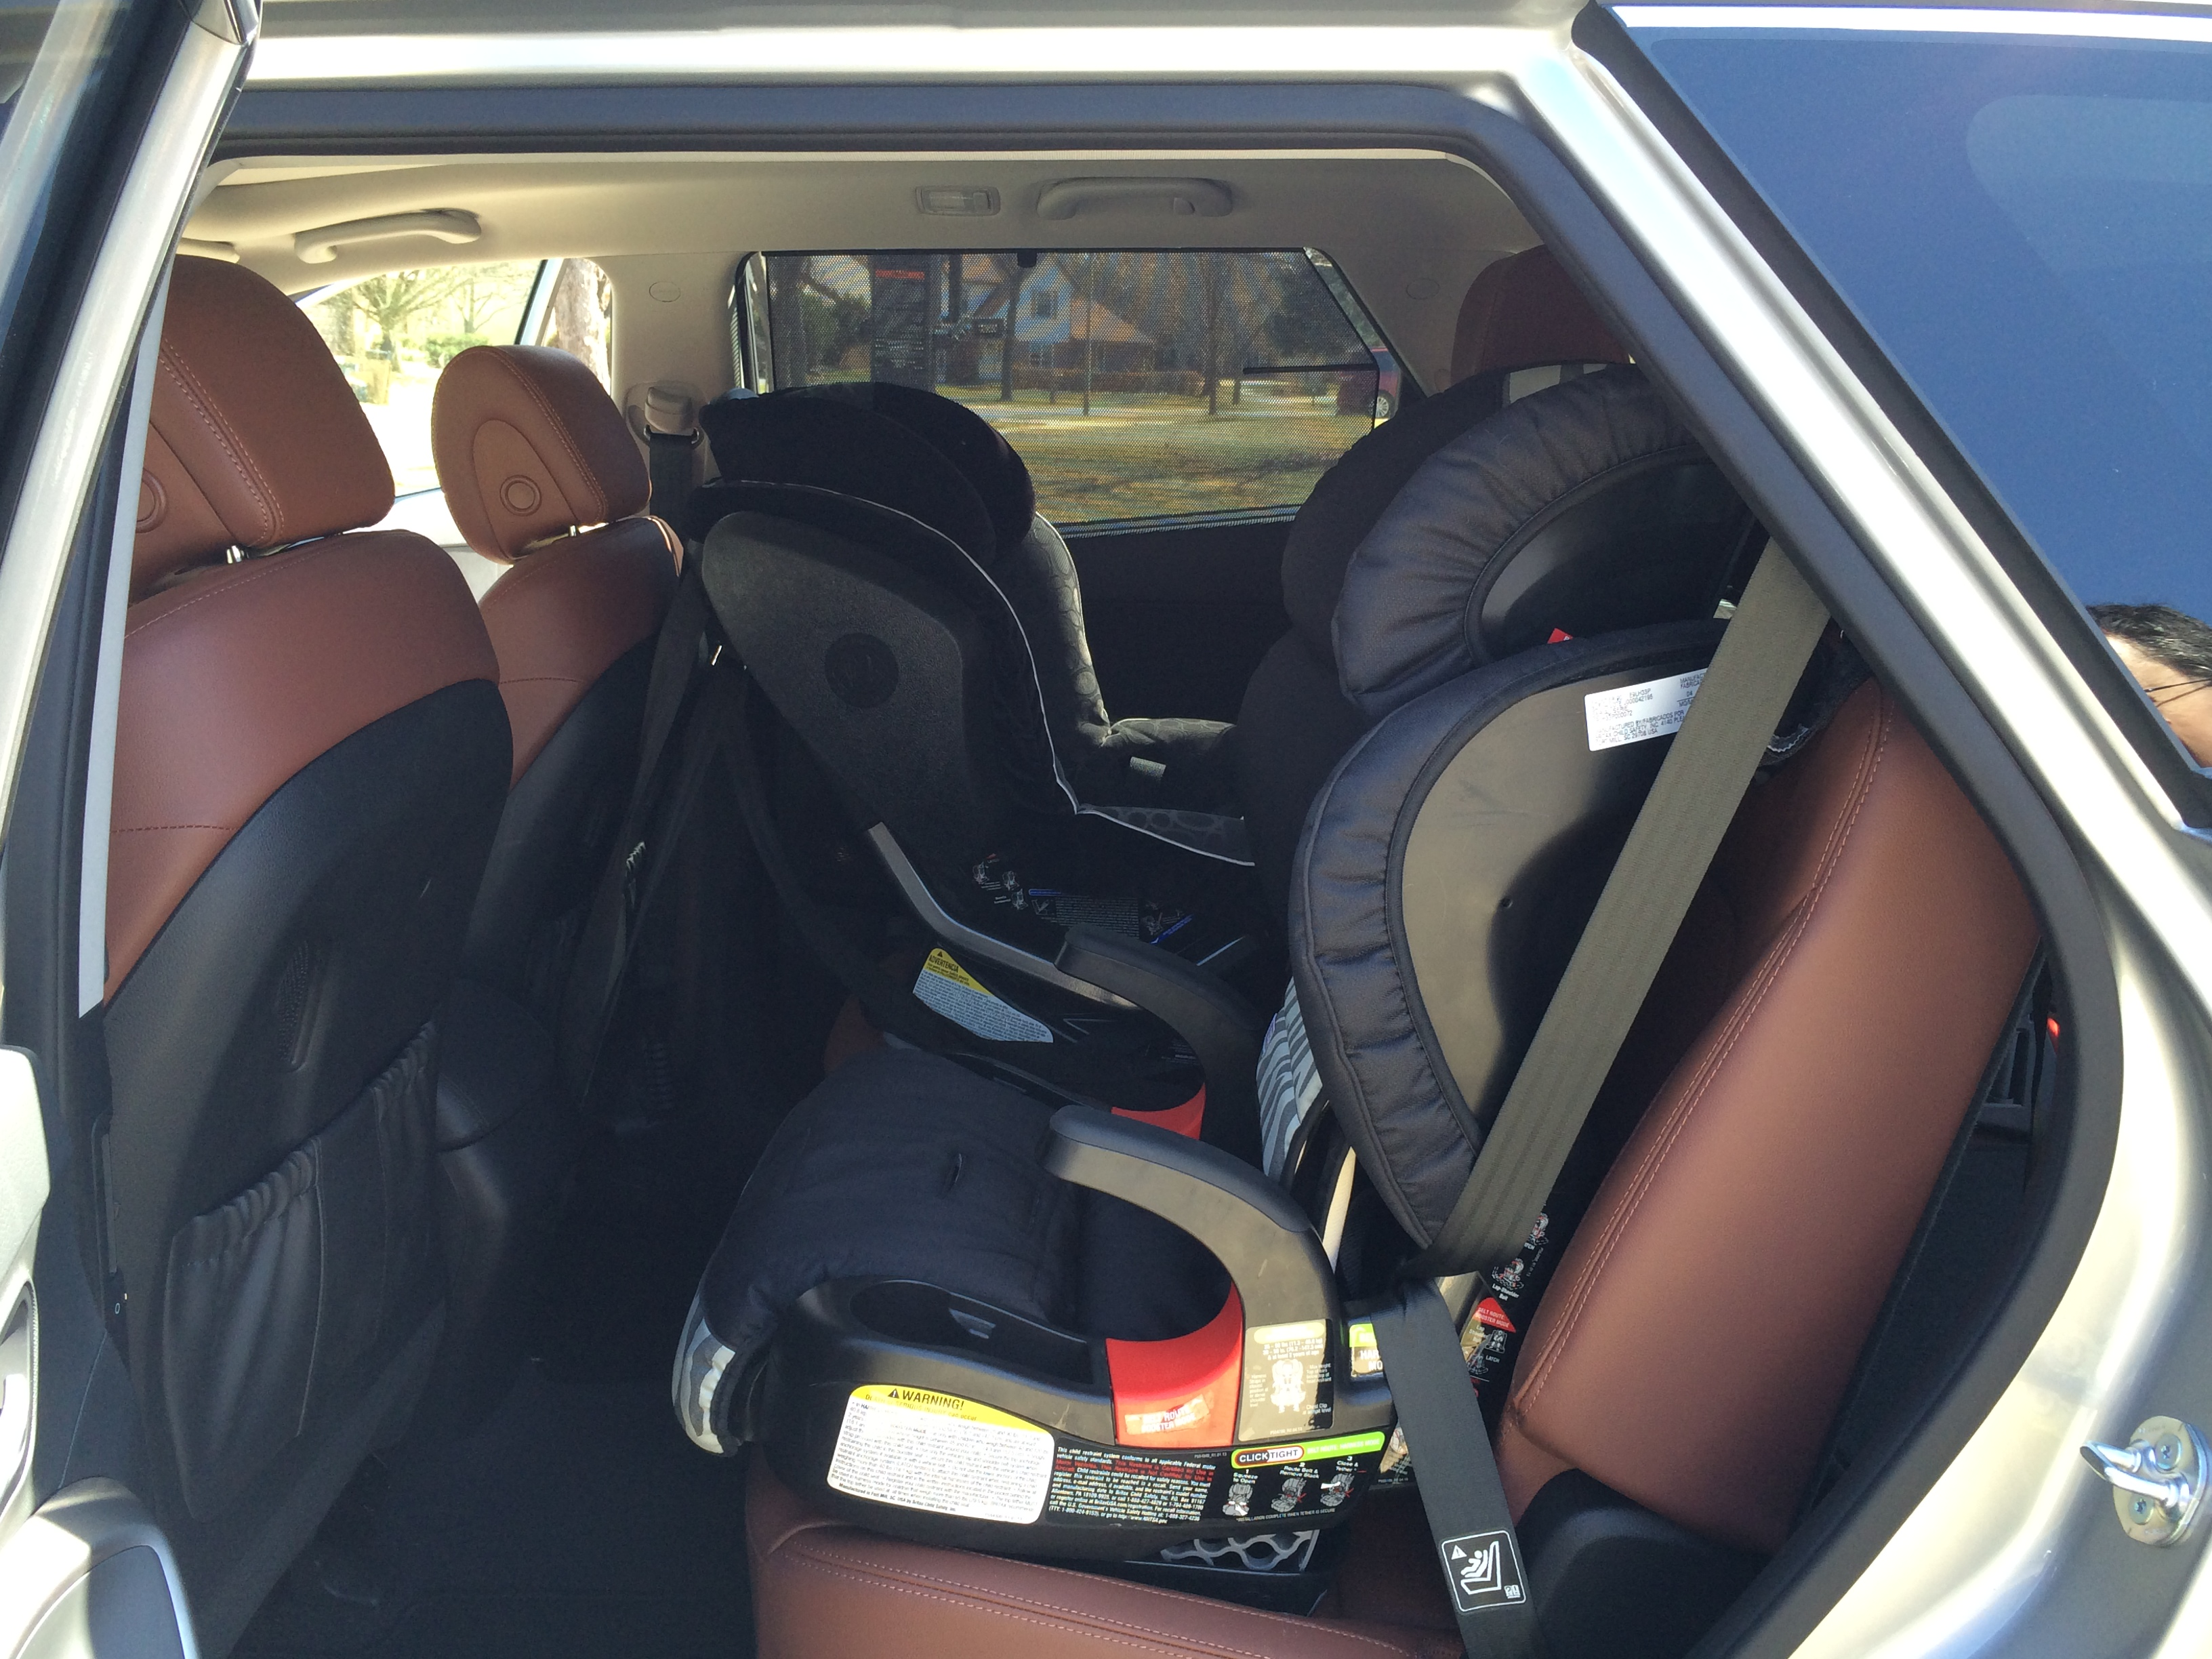 Car Seat Guide Recaro Performance Sport Combination Car Seat - I also installed a graco snugride a britax advocate and a kidsembrace ninja turtle seat they all installed quickly and easily in any allowable